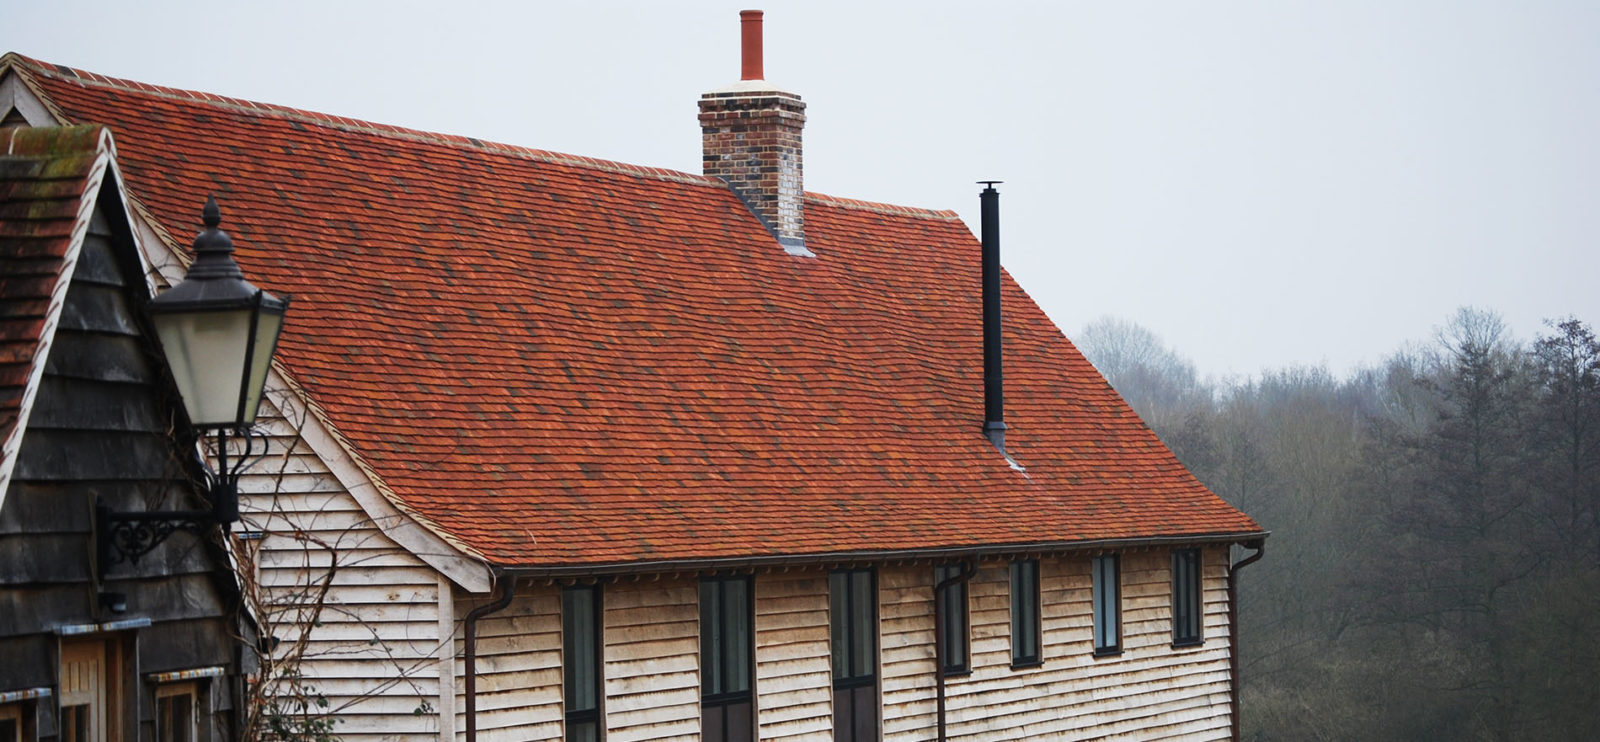 Lifestiles - Handmade Multi Clay Roof Tiles - Sible, England